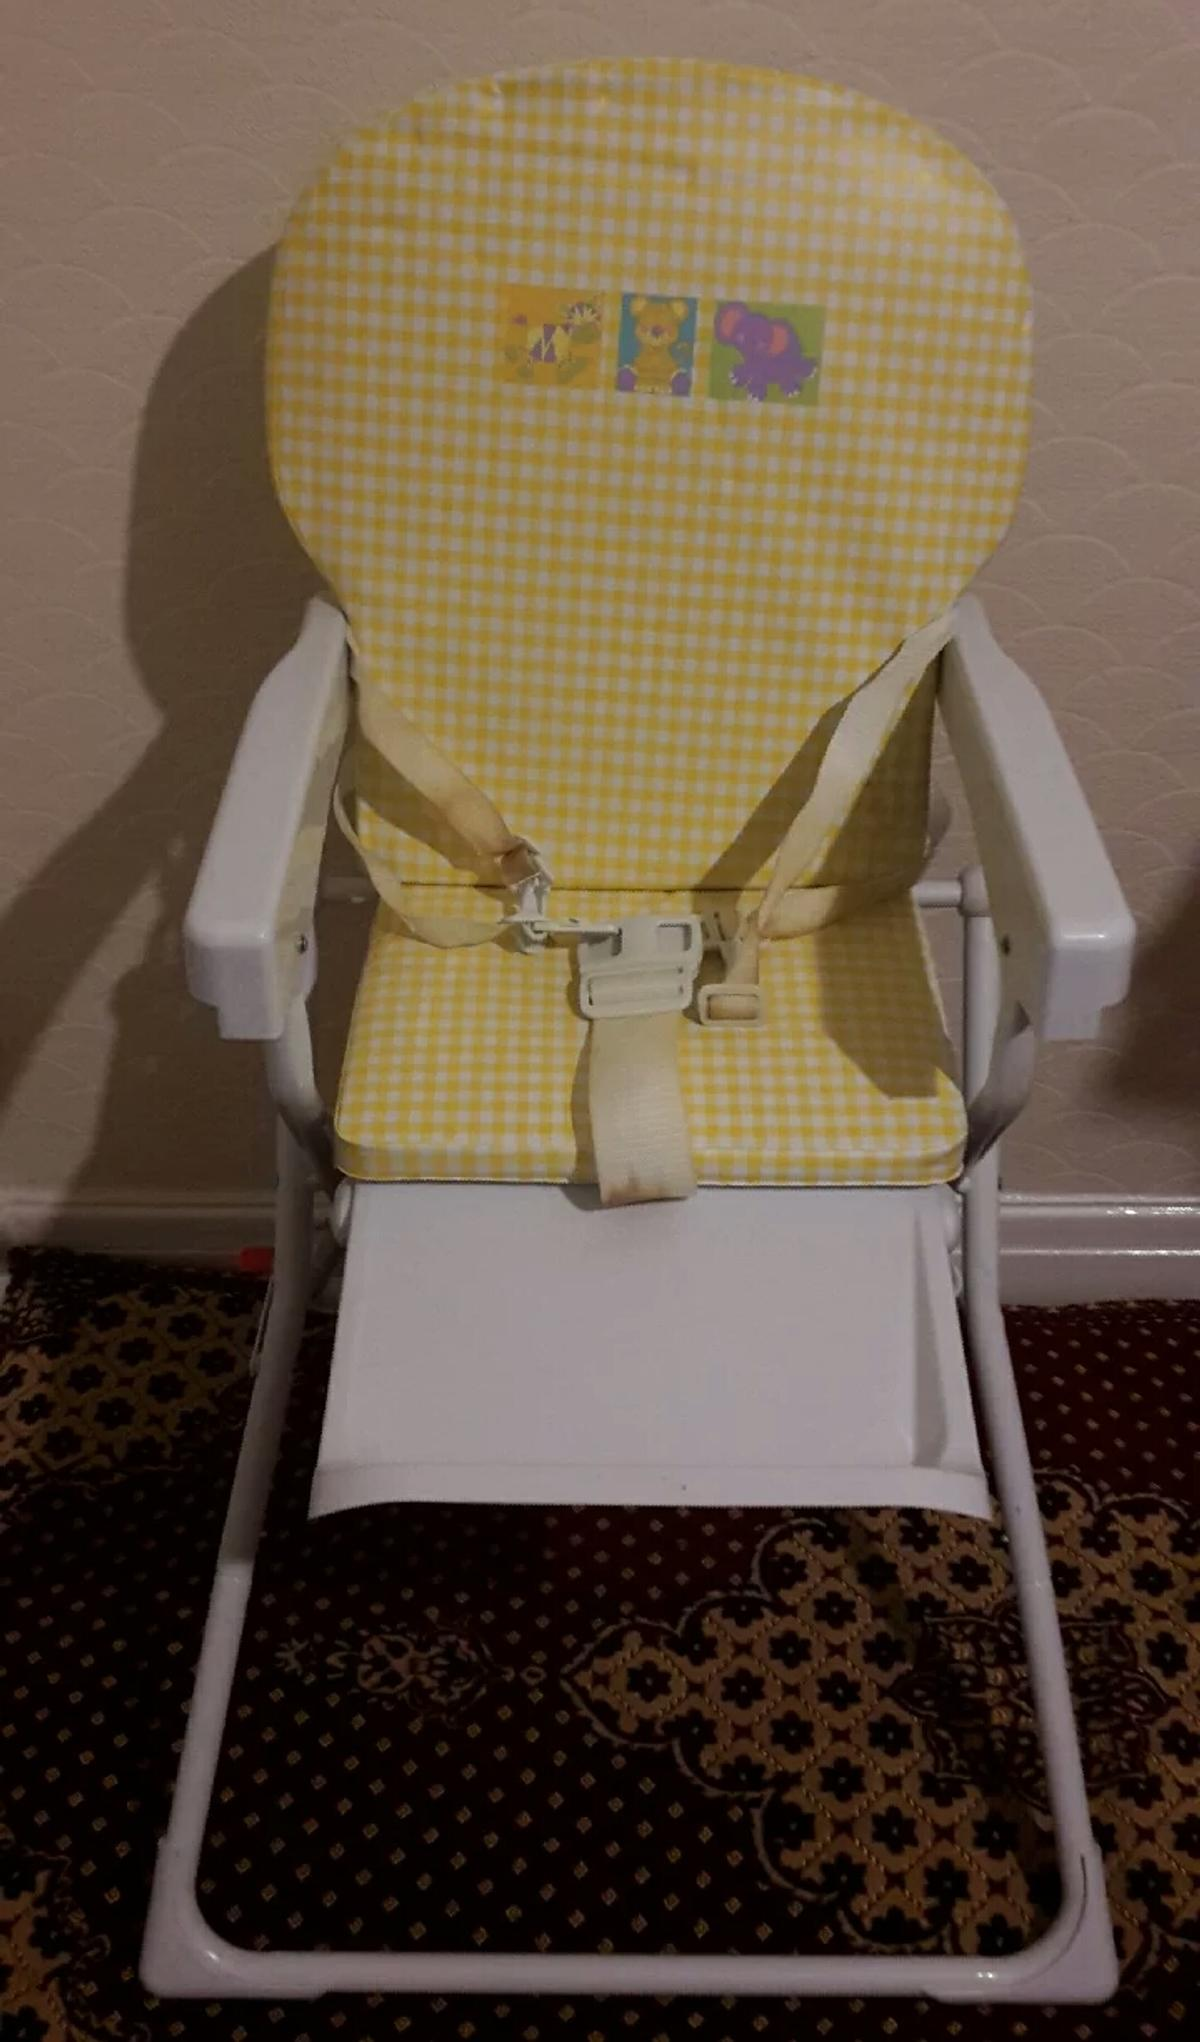 Remarkable Beanstalk Baby High Chair Short Links Chair Design For Home Short Linksinfo